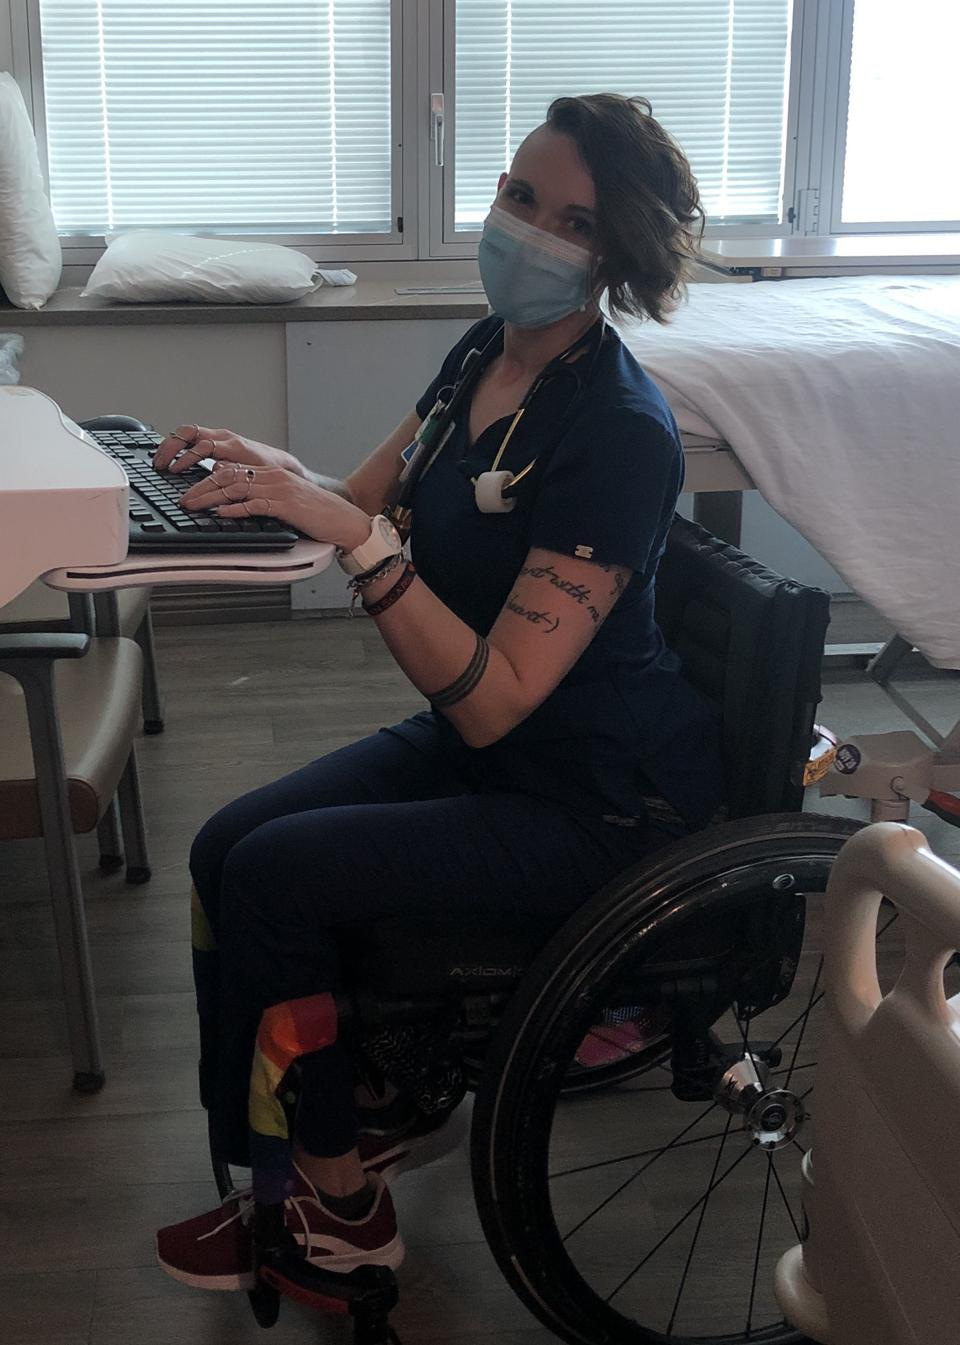 Ryann Kress, a nurse who uses a wheelchair, working in the hospital.